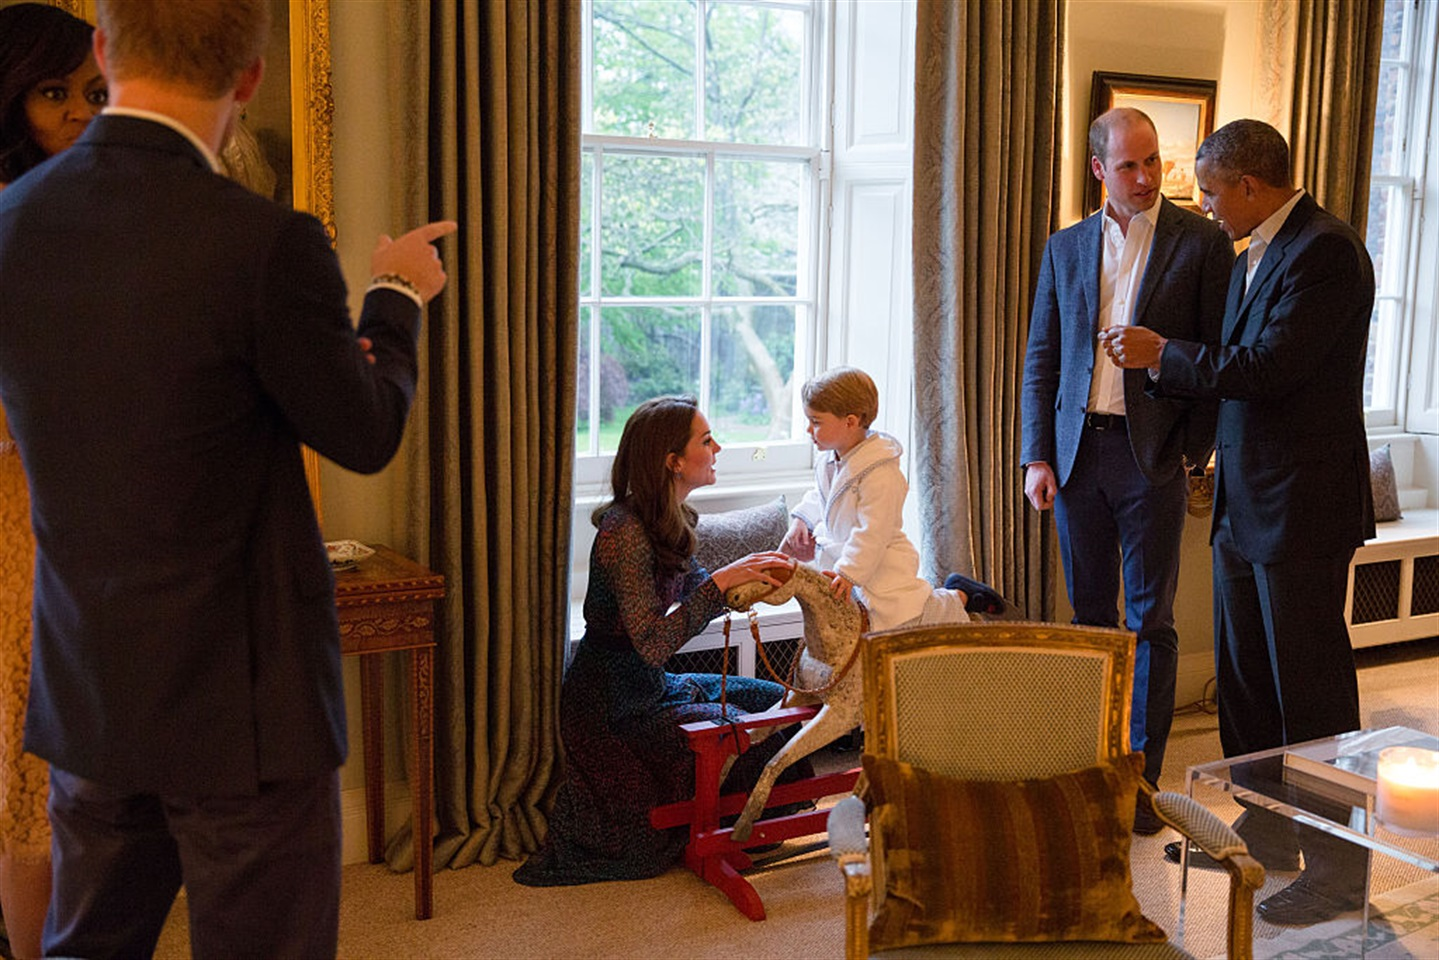 20 photos Kate Middleton with children: Prince George and Princess Charlotte